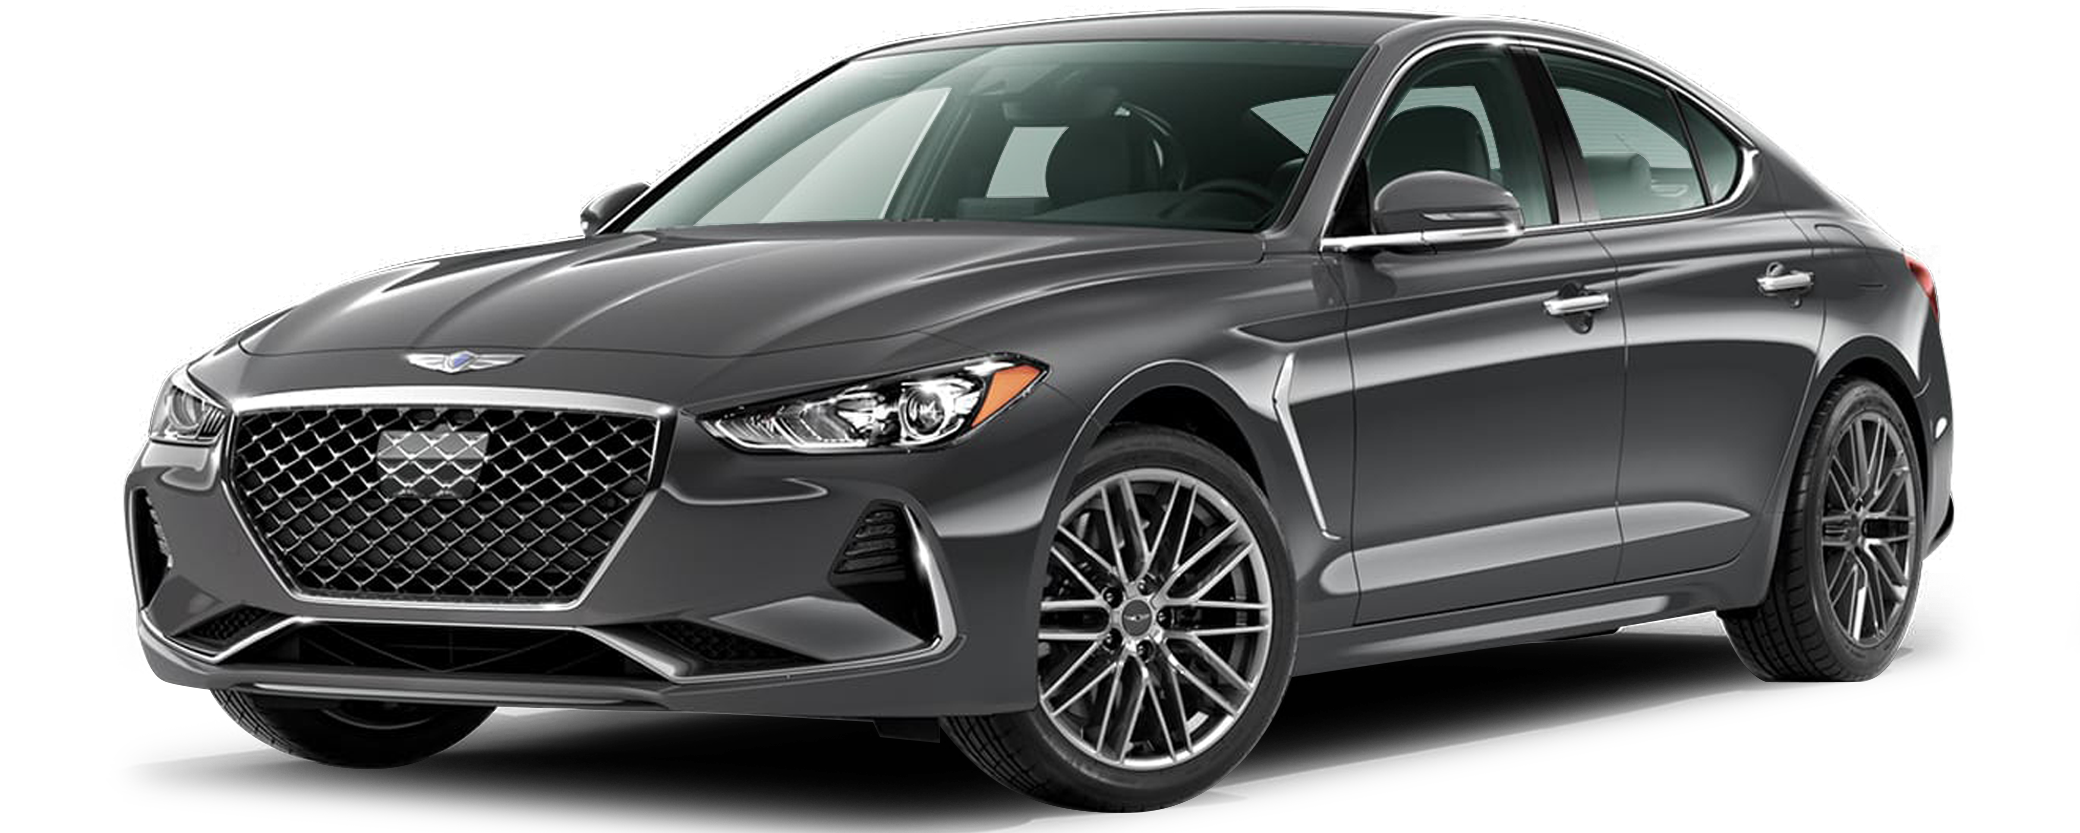 2019 Genesis G70 Incentives Specials Offers In Milford Ma